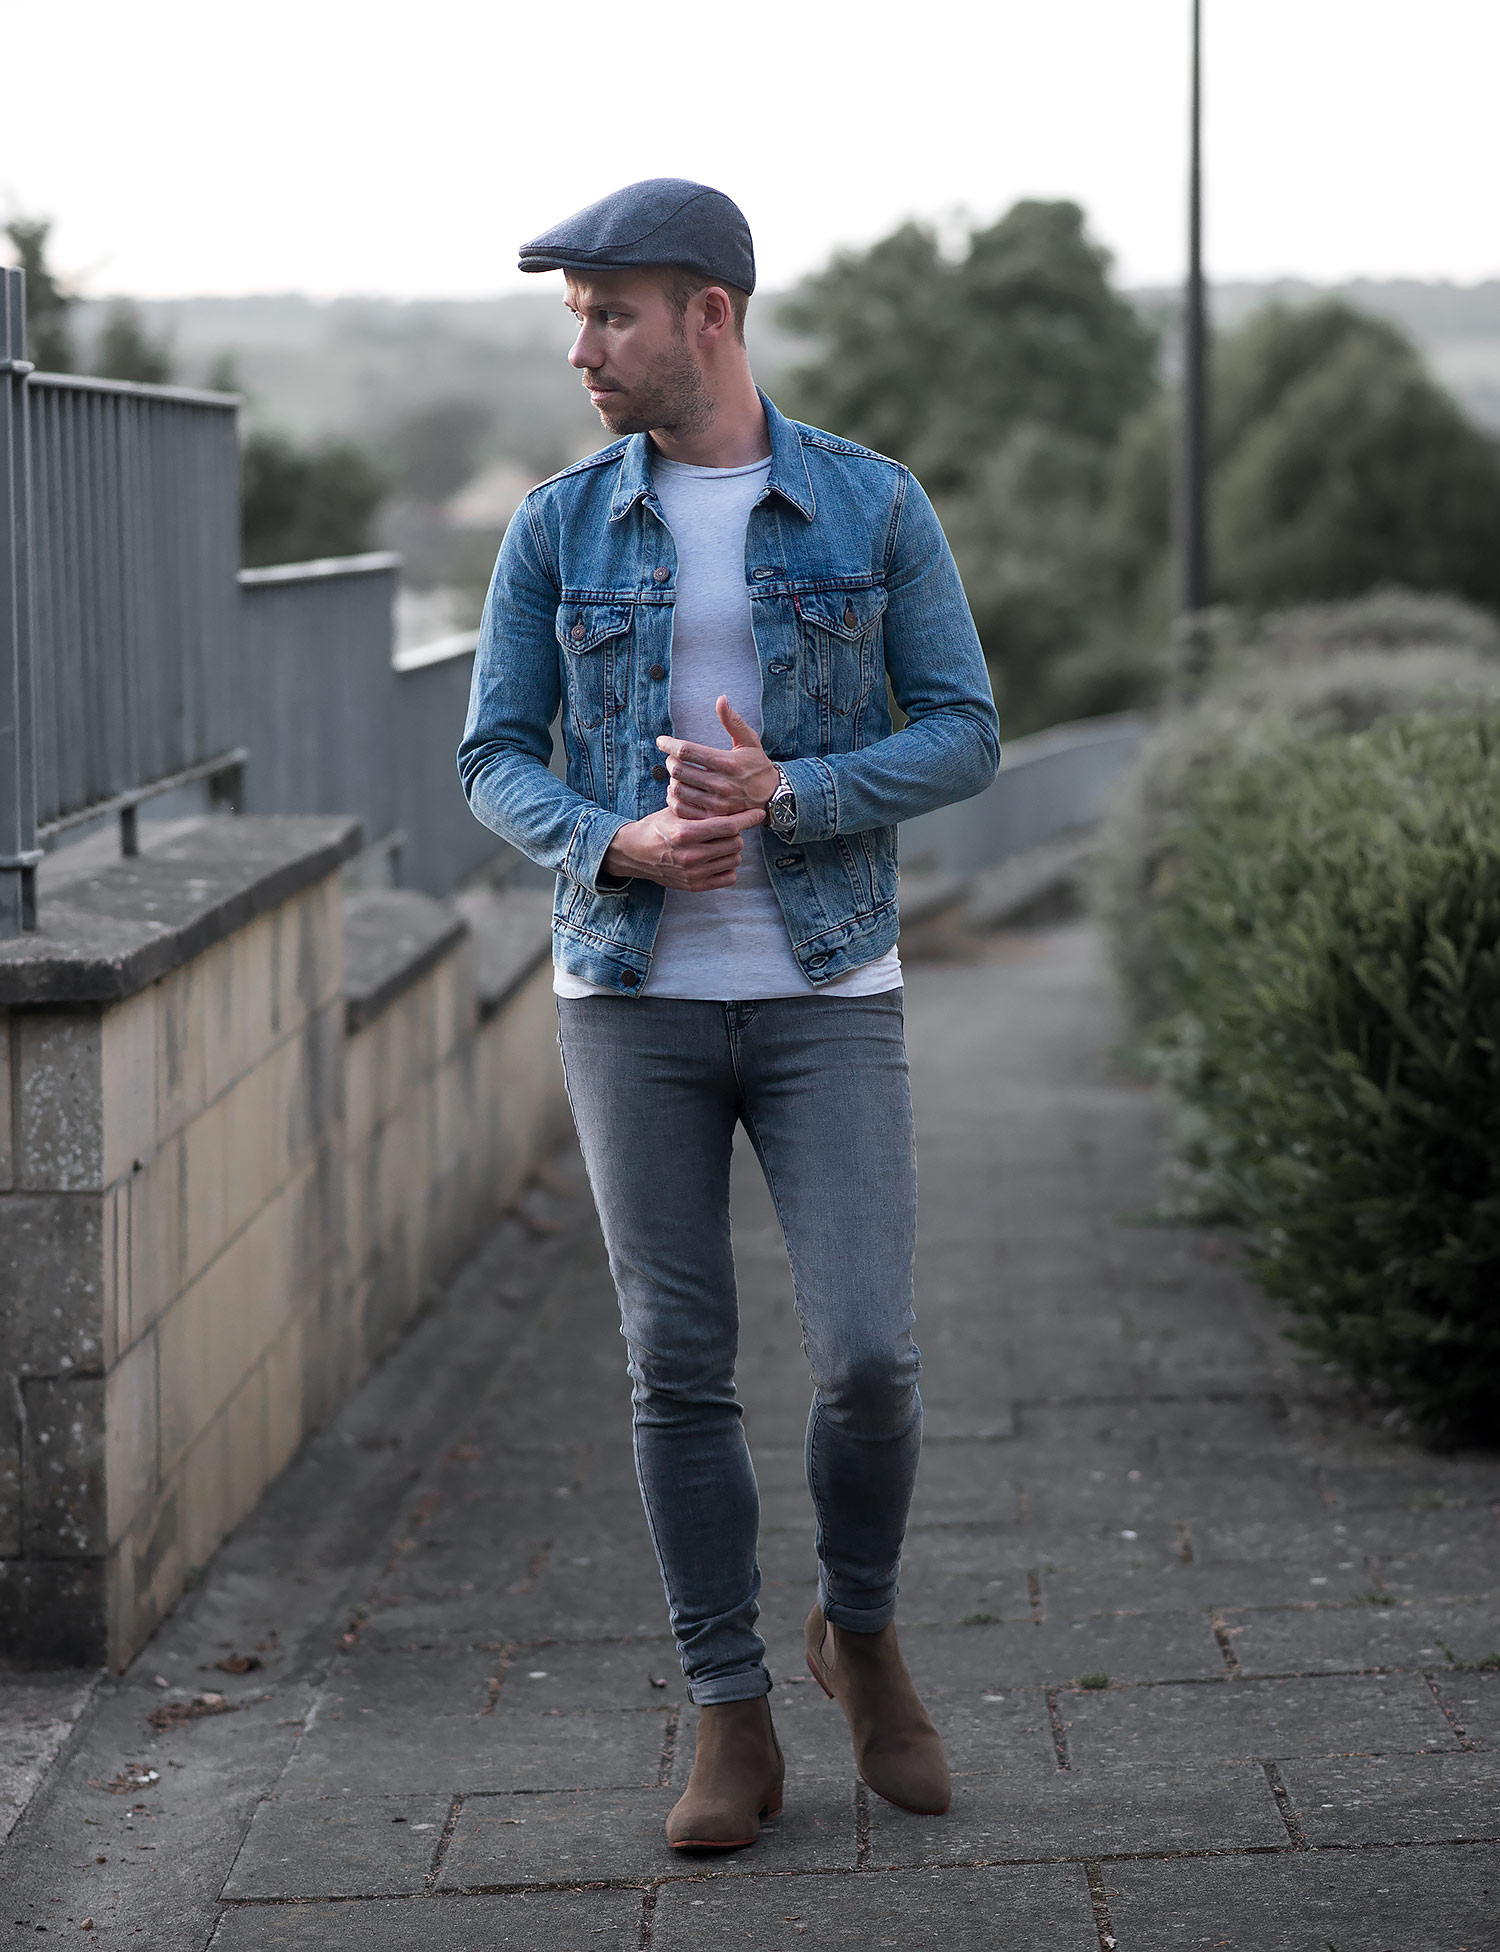 Throwback Leviu0026#39;s Denim Jacket And Chelsea Boots Outfit ...